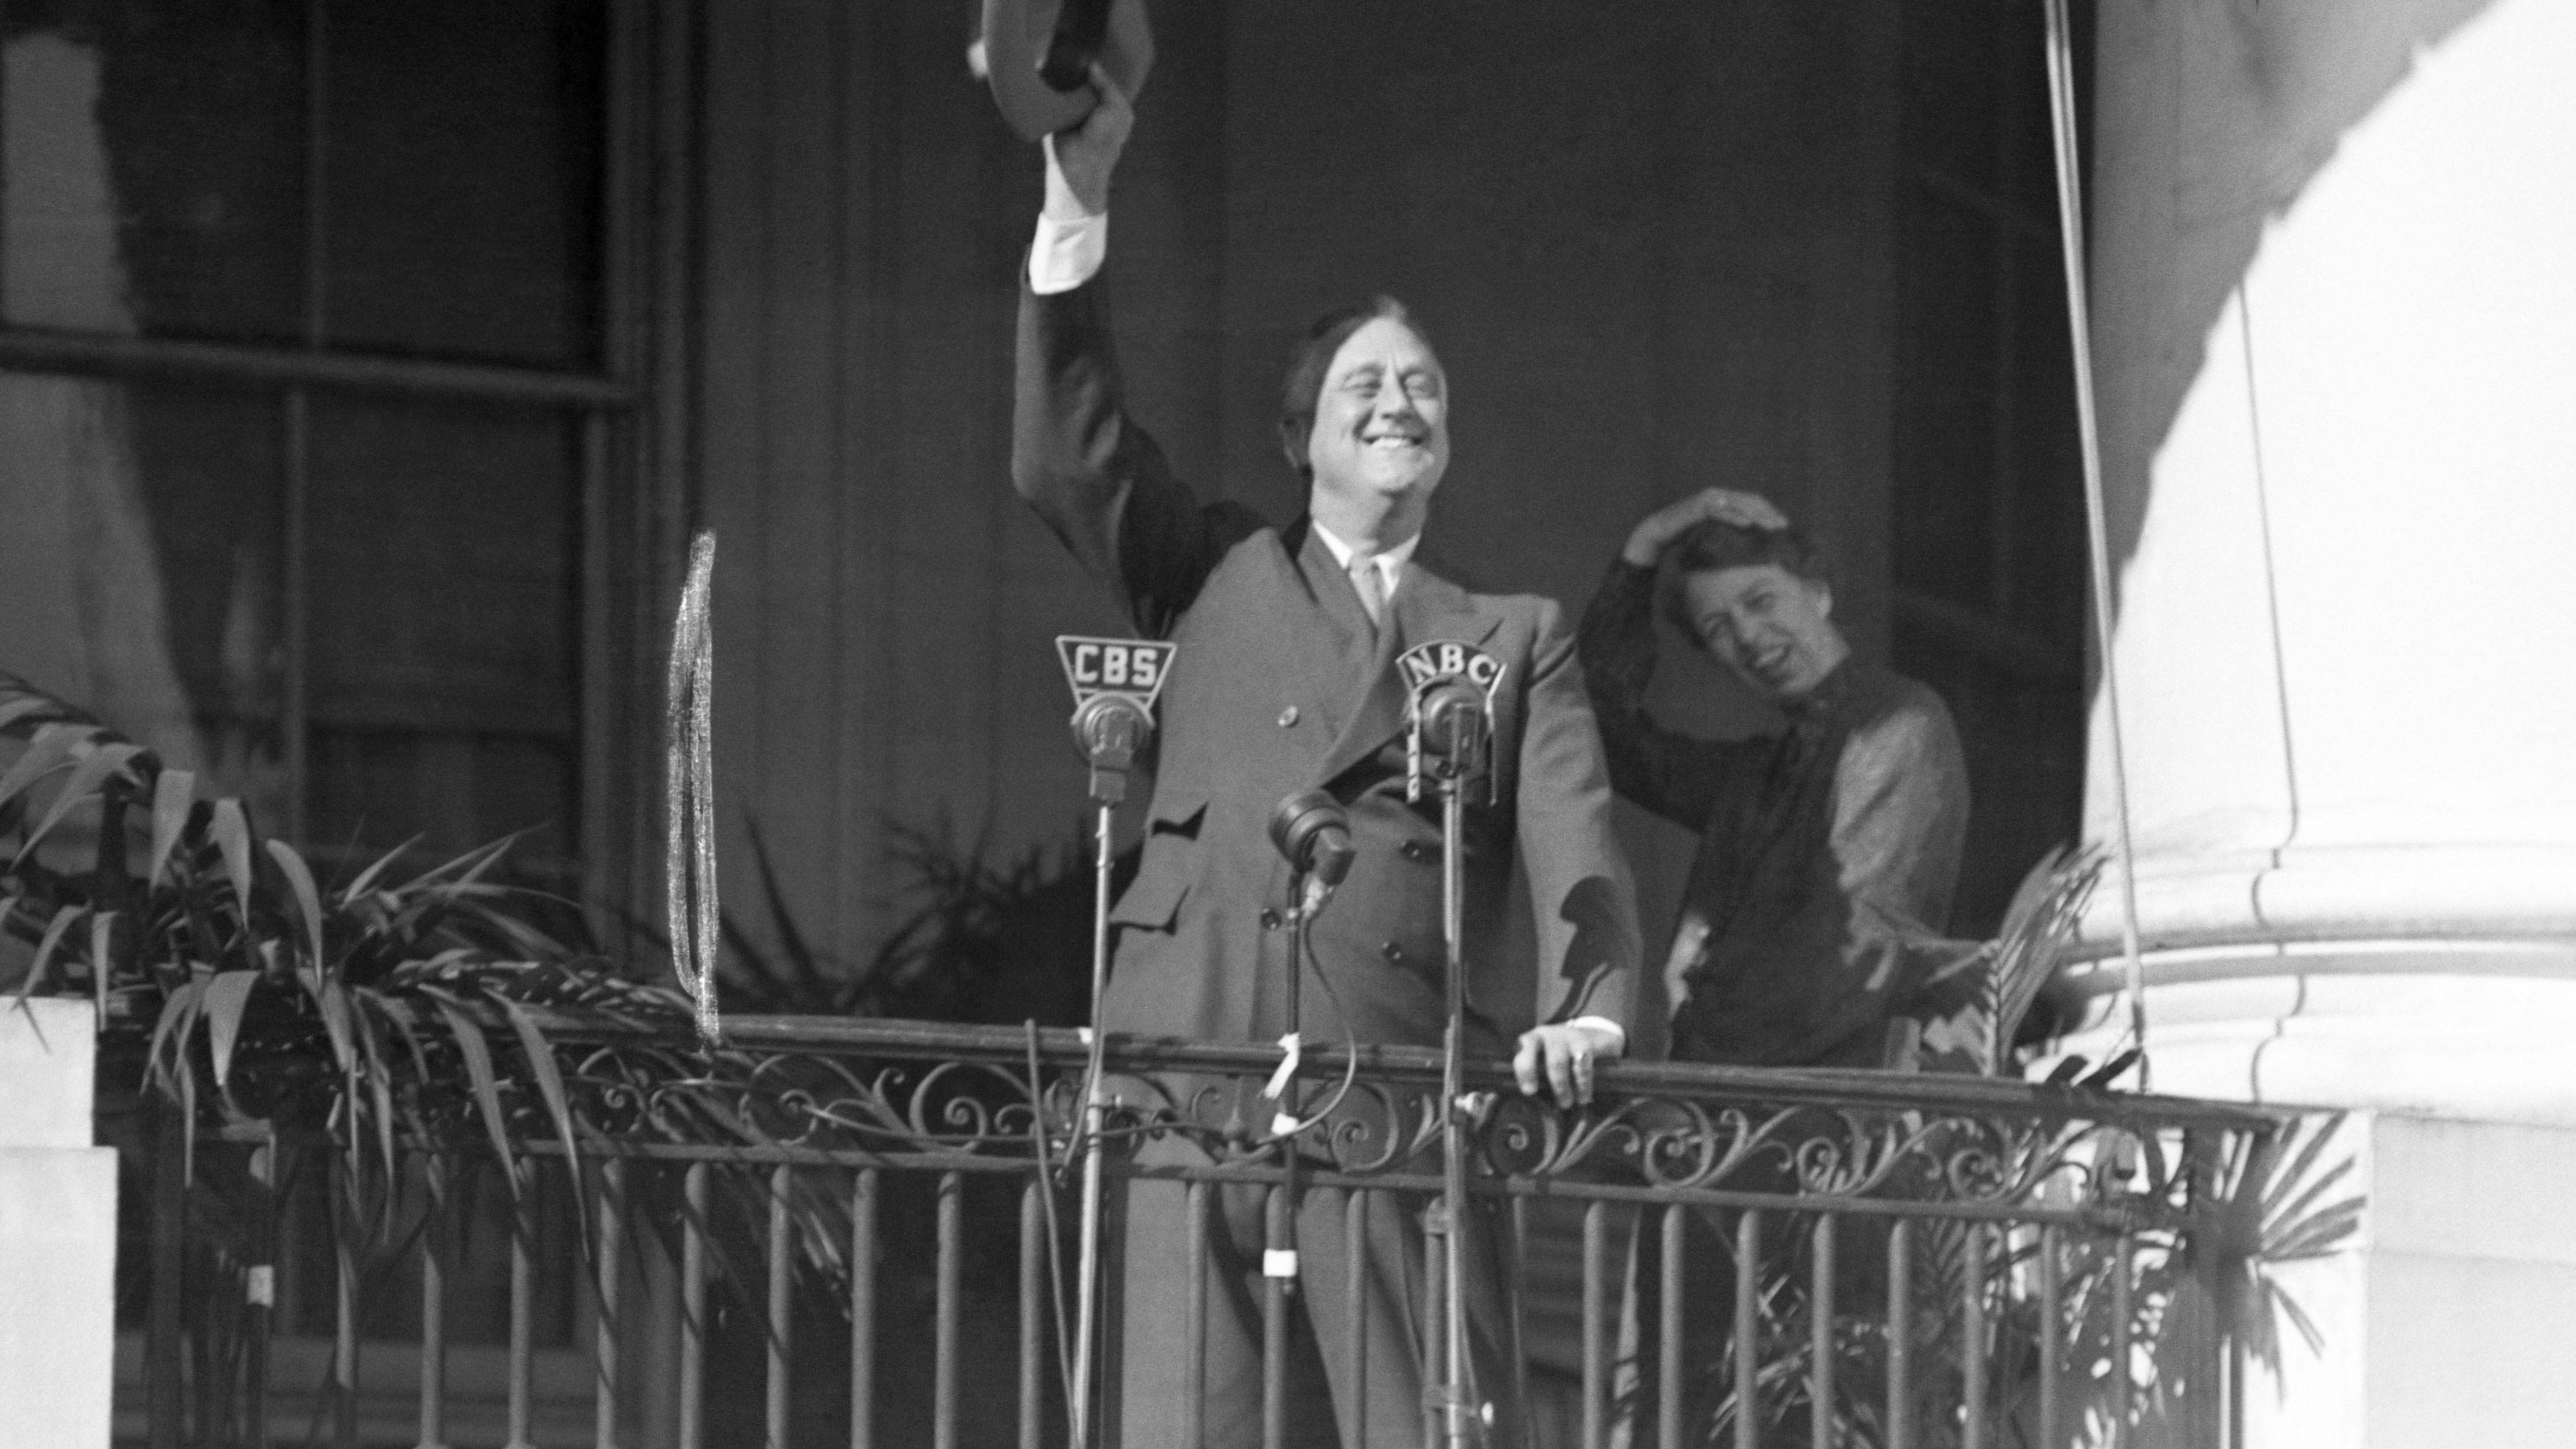 Could FDR Actually Walk? Newly Discovered Film Shows He Could